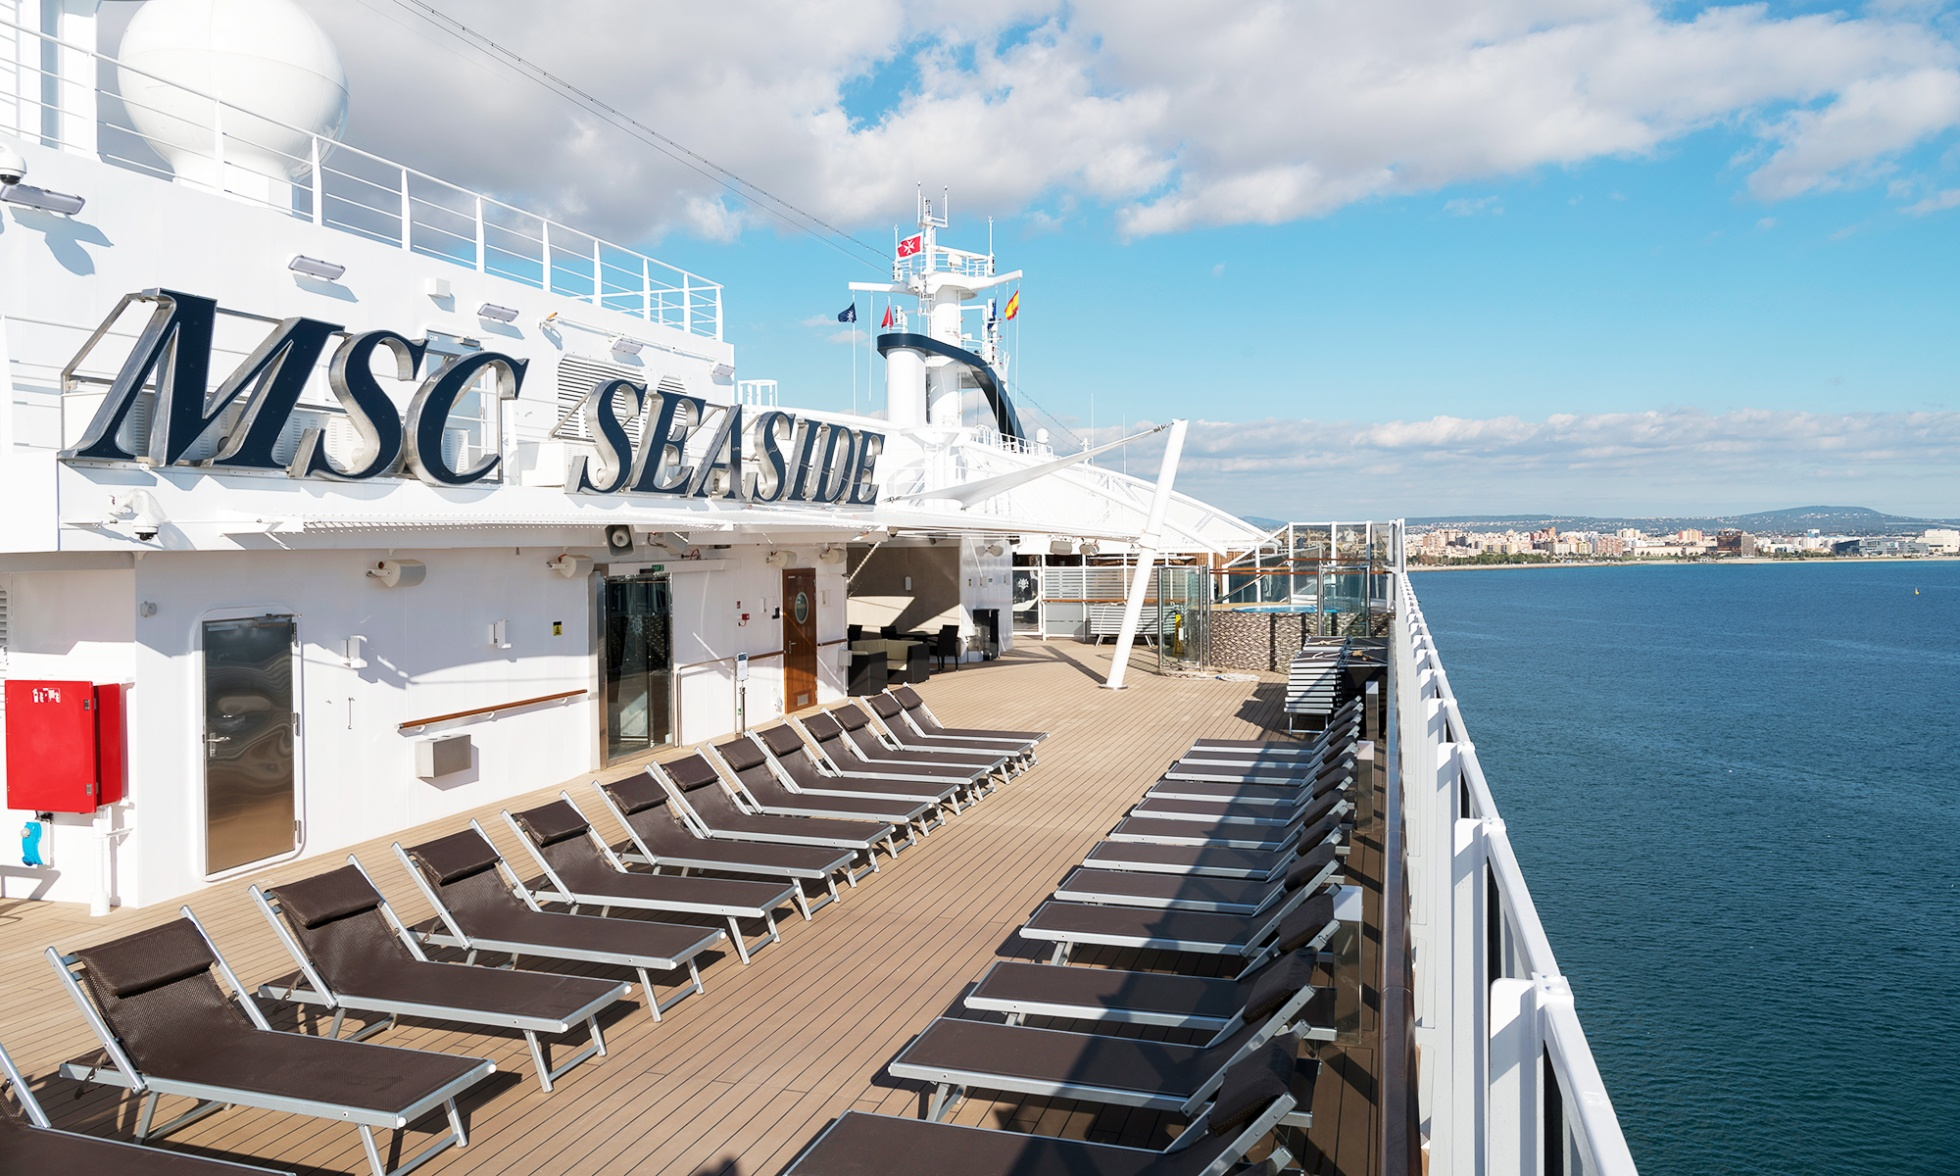 Crociera MSC Seaside Partenza 7 Agosto 7 Notti Cabina Interna cat. Fantastica